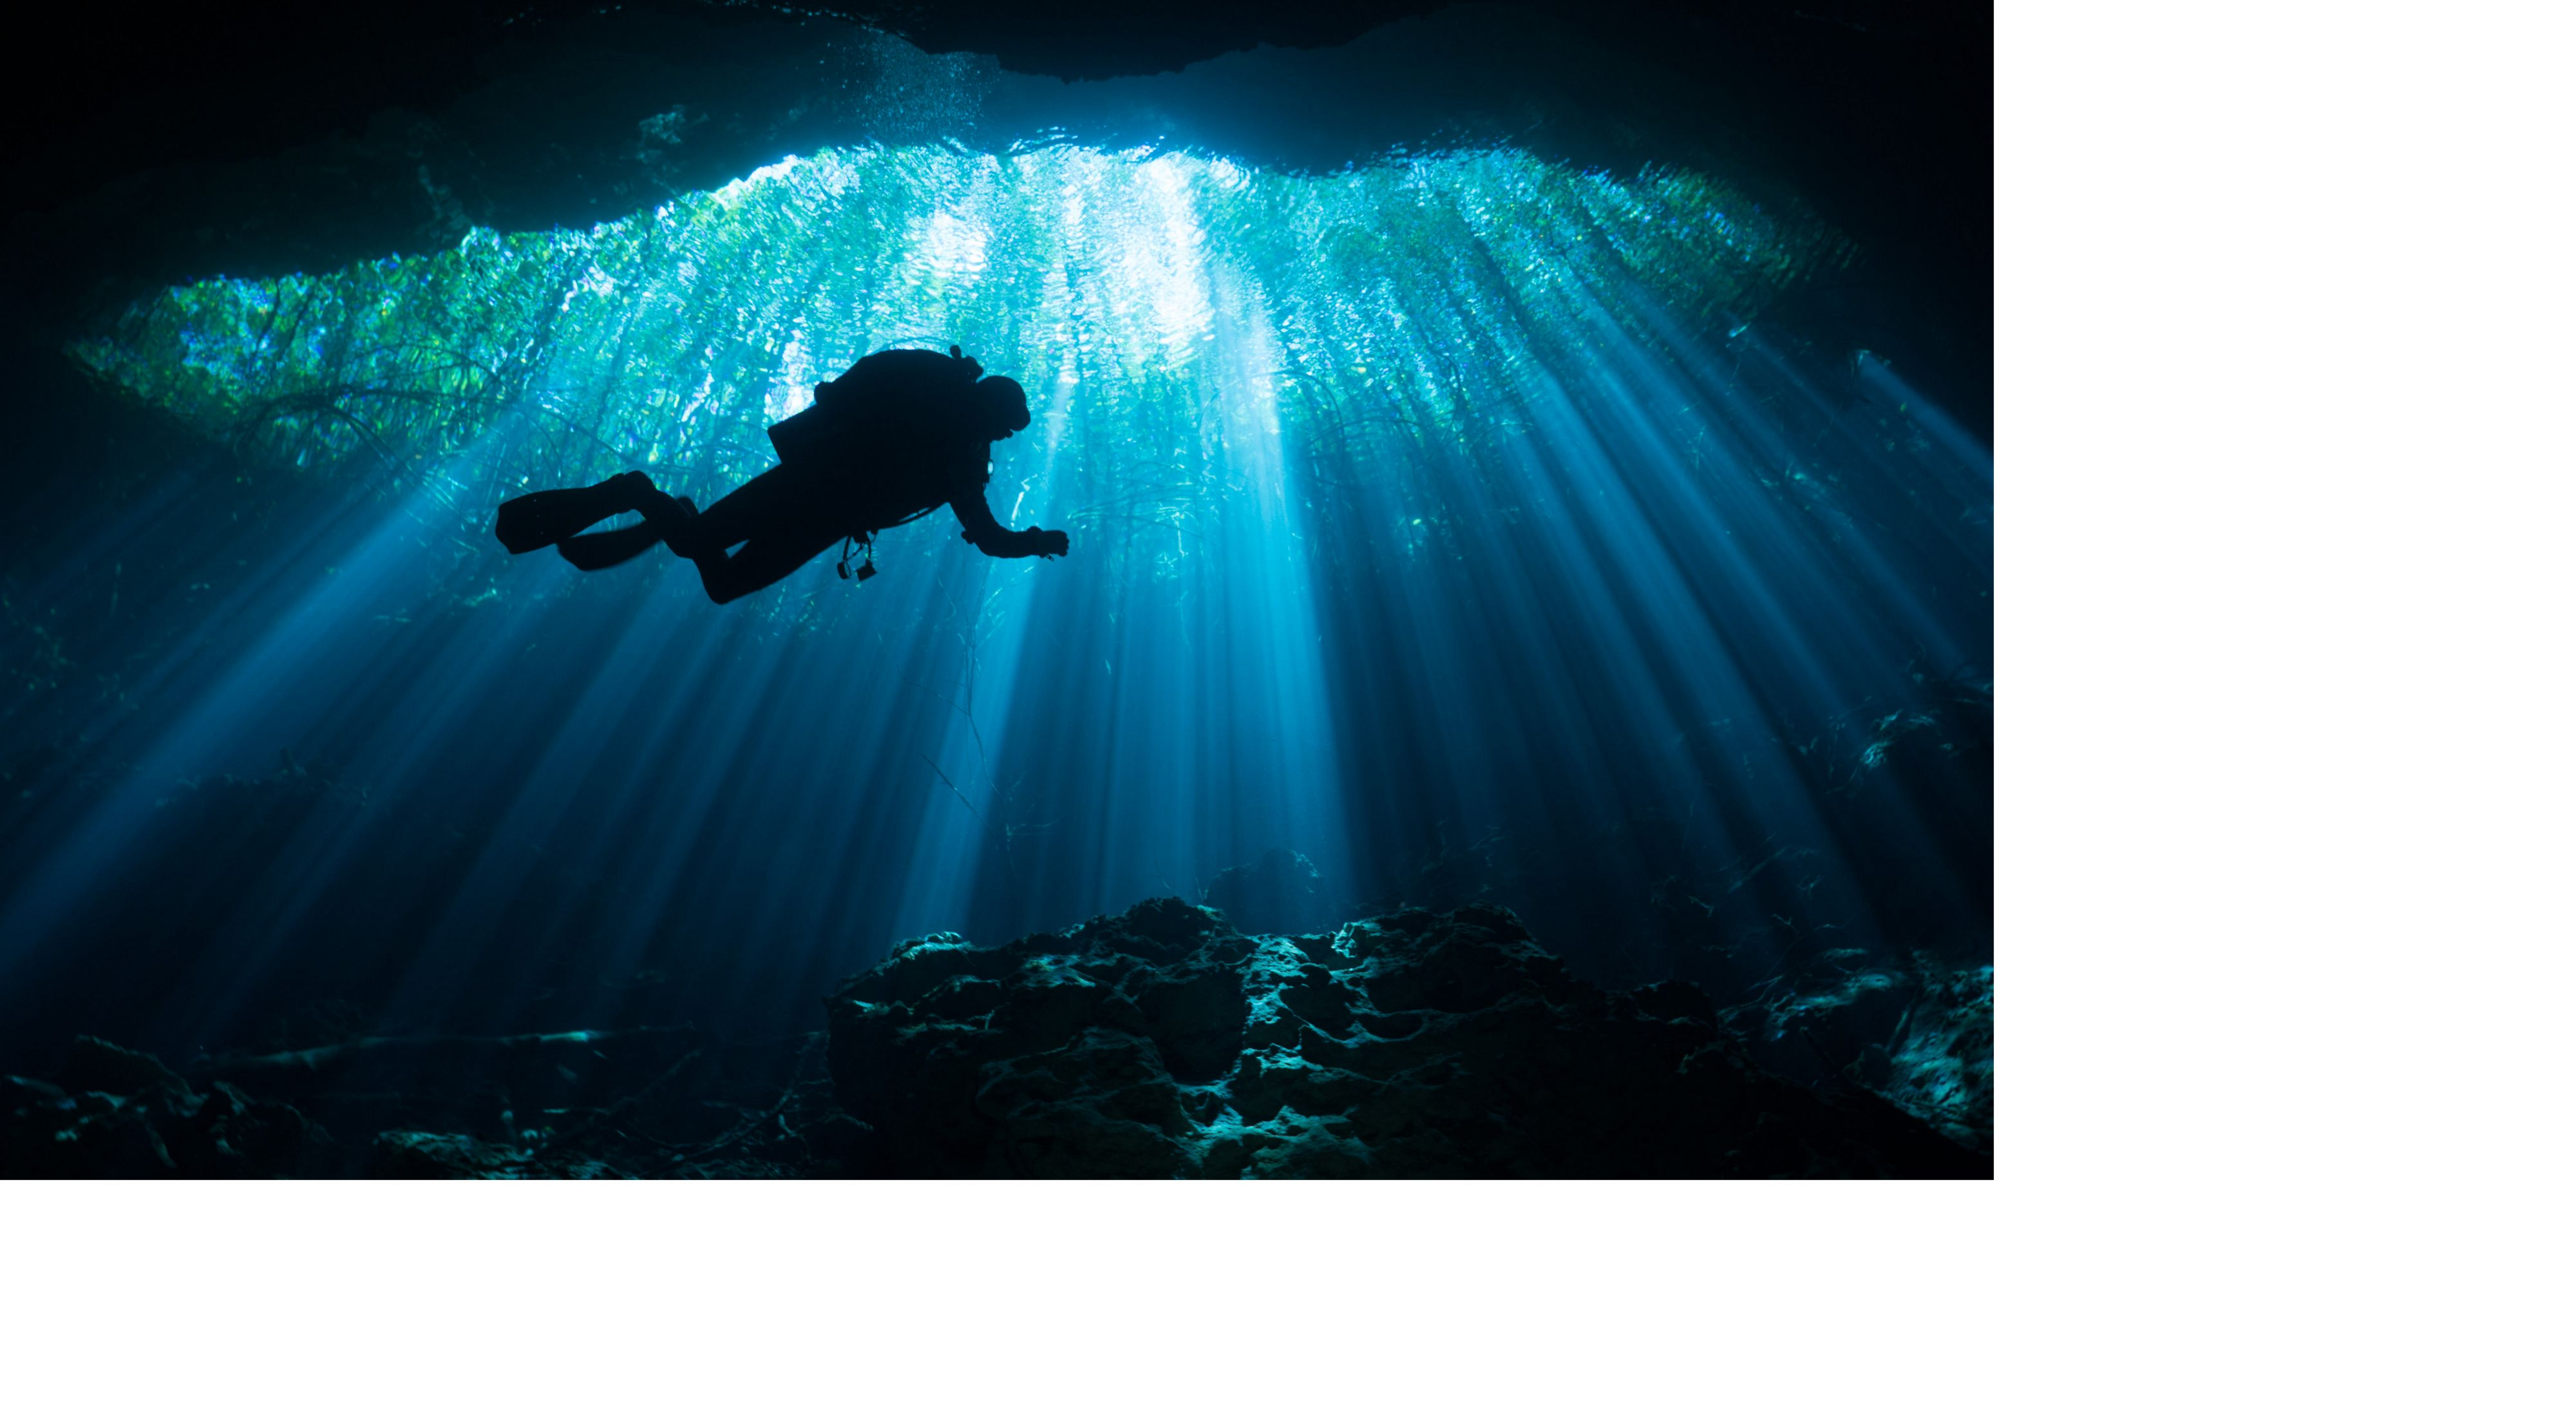 A scuba diver hovers amidst crisp light rays  shining through the trees down into Mexico's Yucatan cave system.